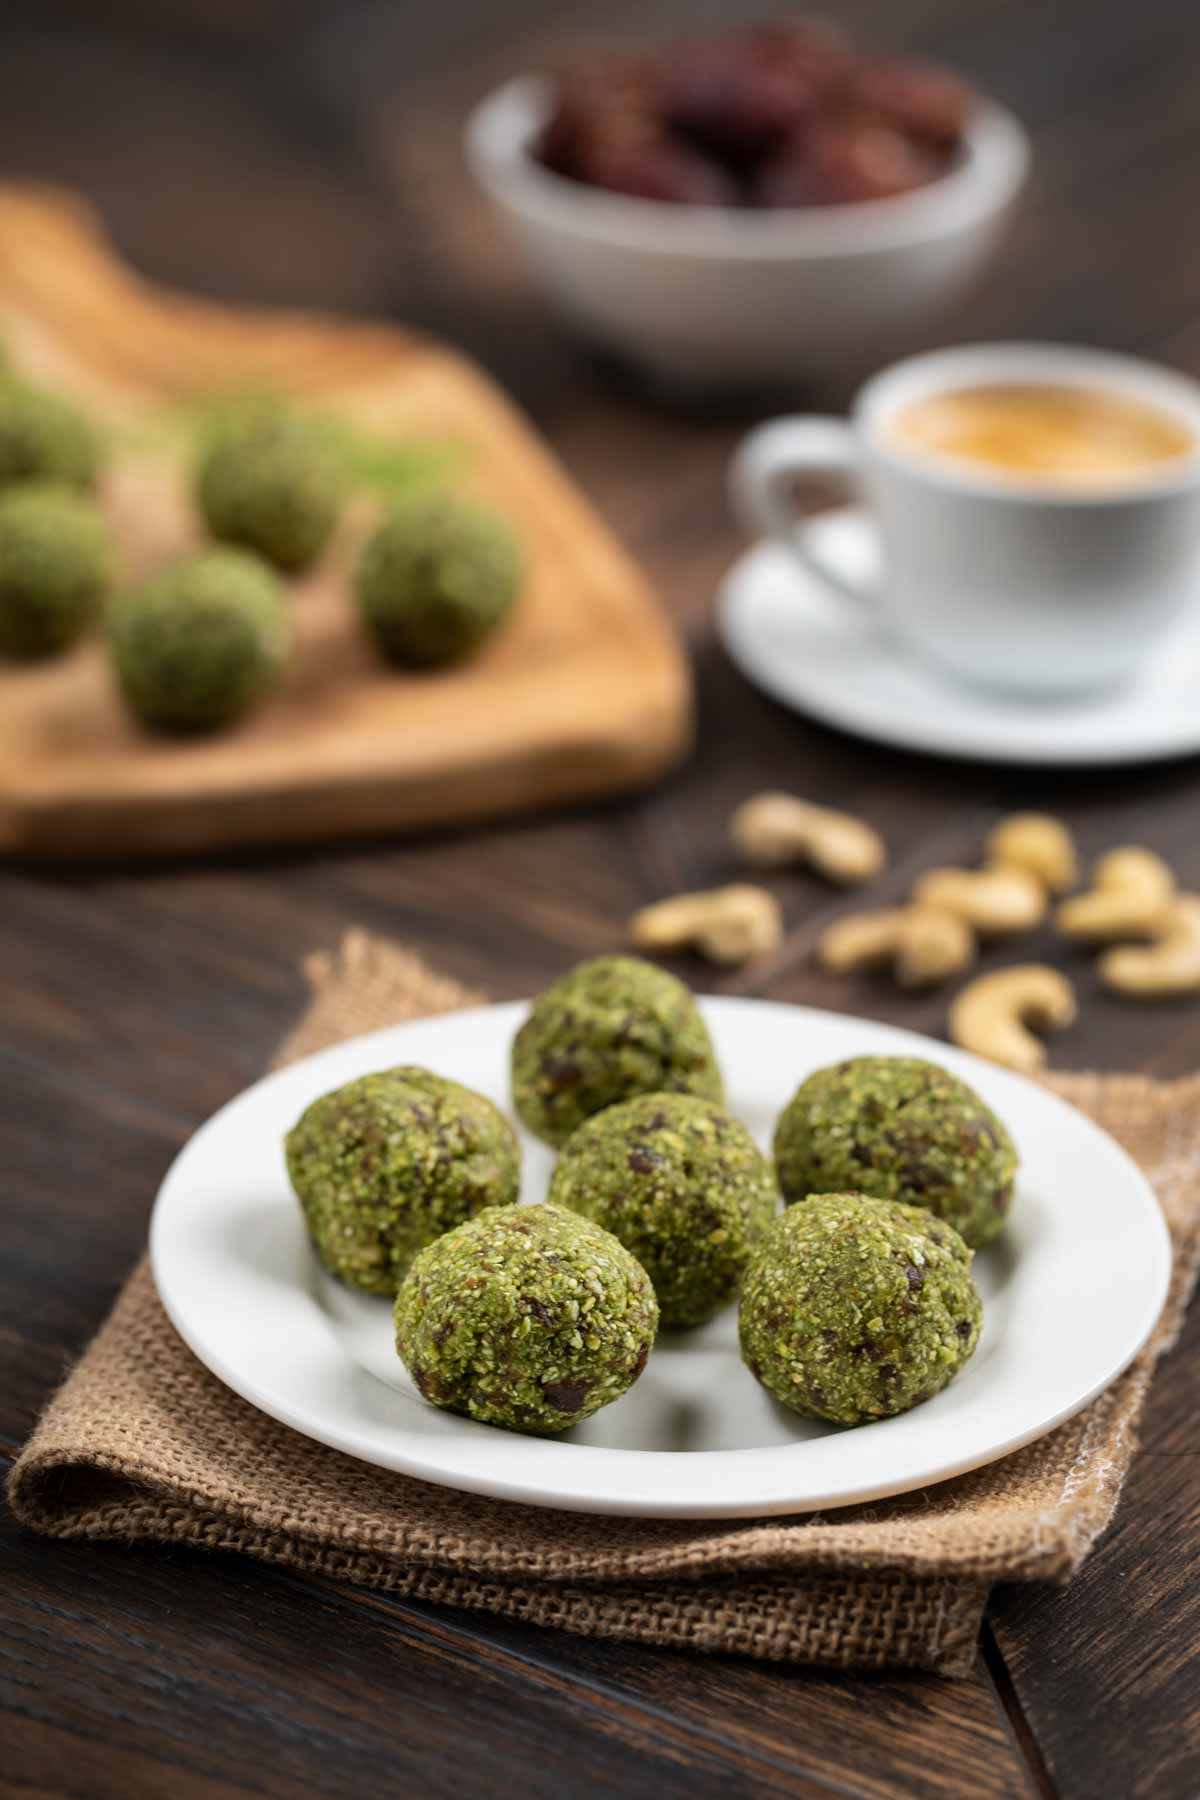 Green tea energy balls on a white plate and a cup of espresso and a cutting board in the background.